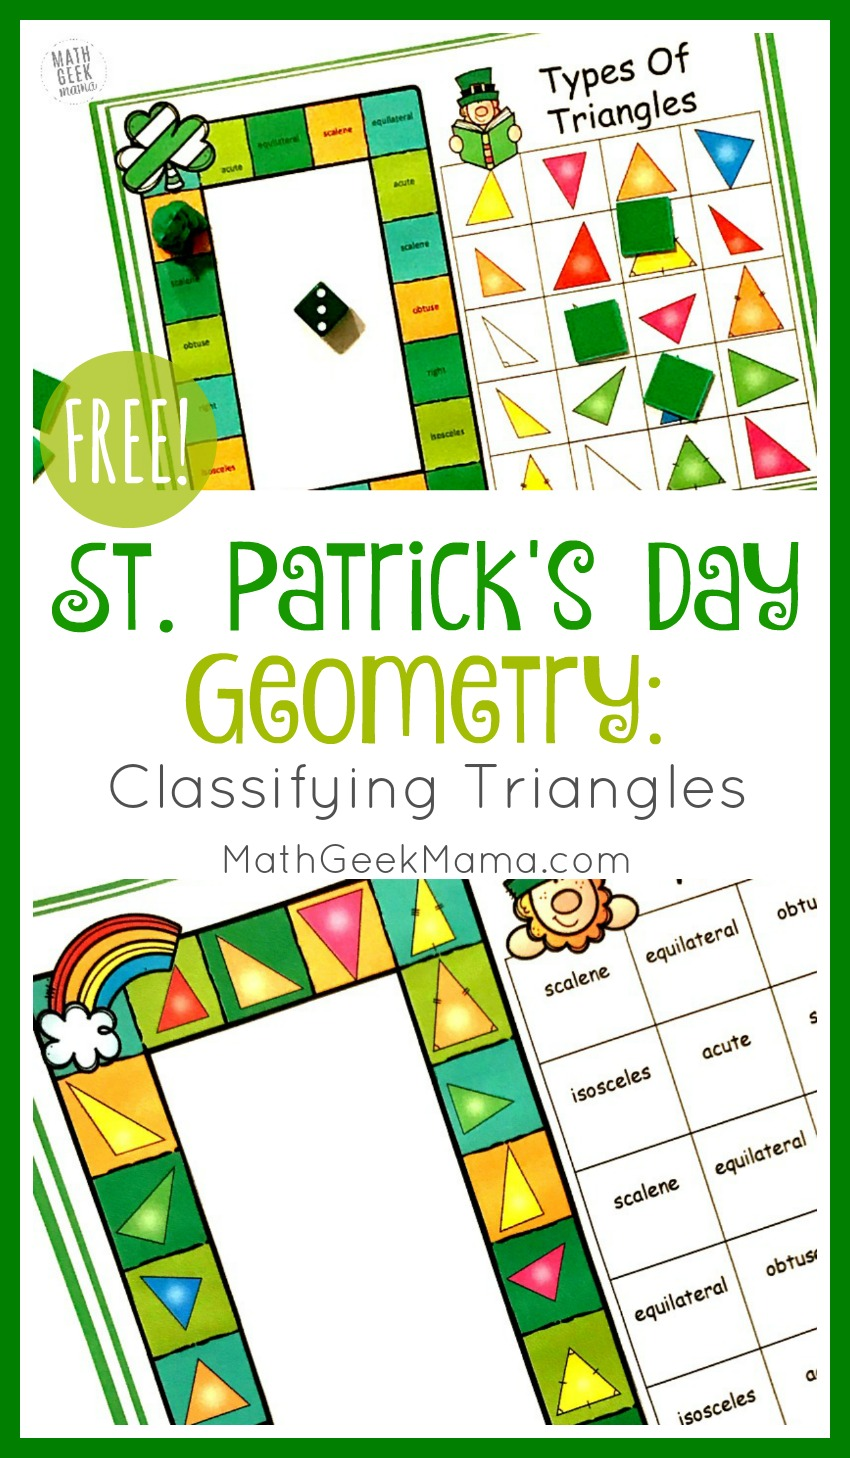 hight resolution of FREE} St. Patrick's Day Triangle Game   Grades 4-6   Math Geek Mama